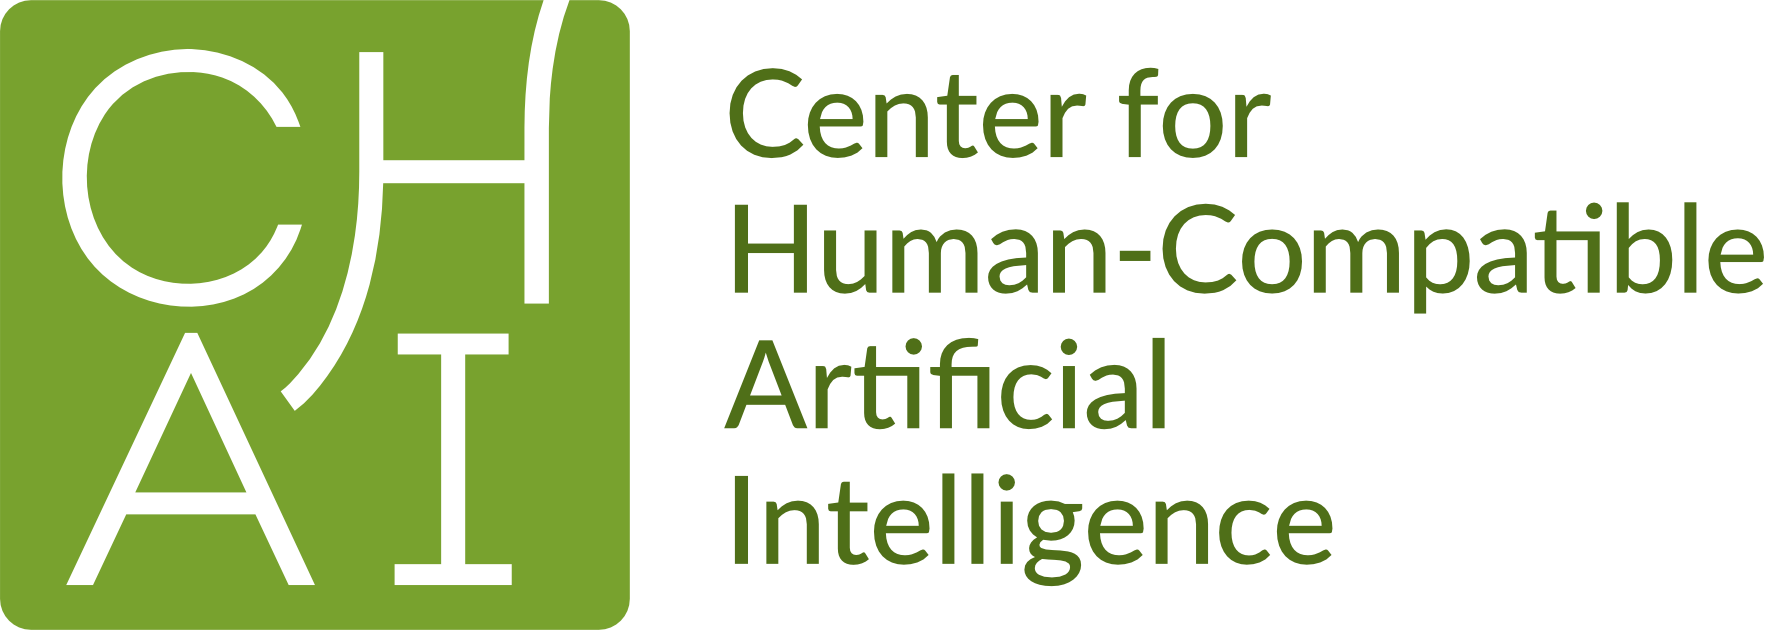 Center for Human-Compatible AI